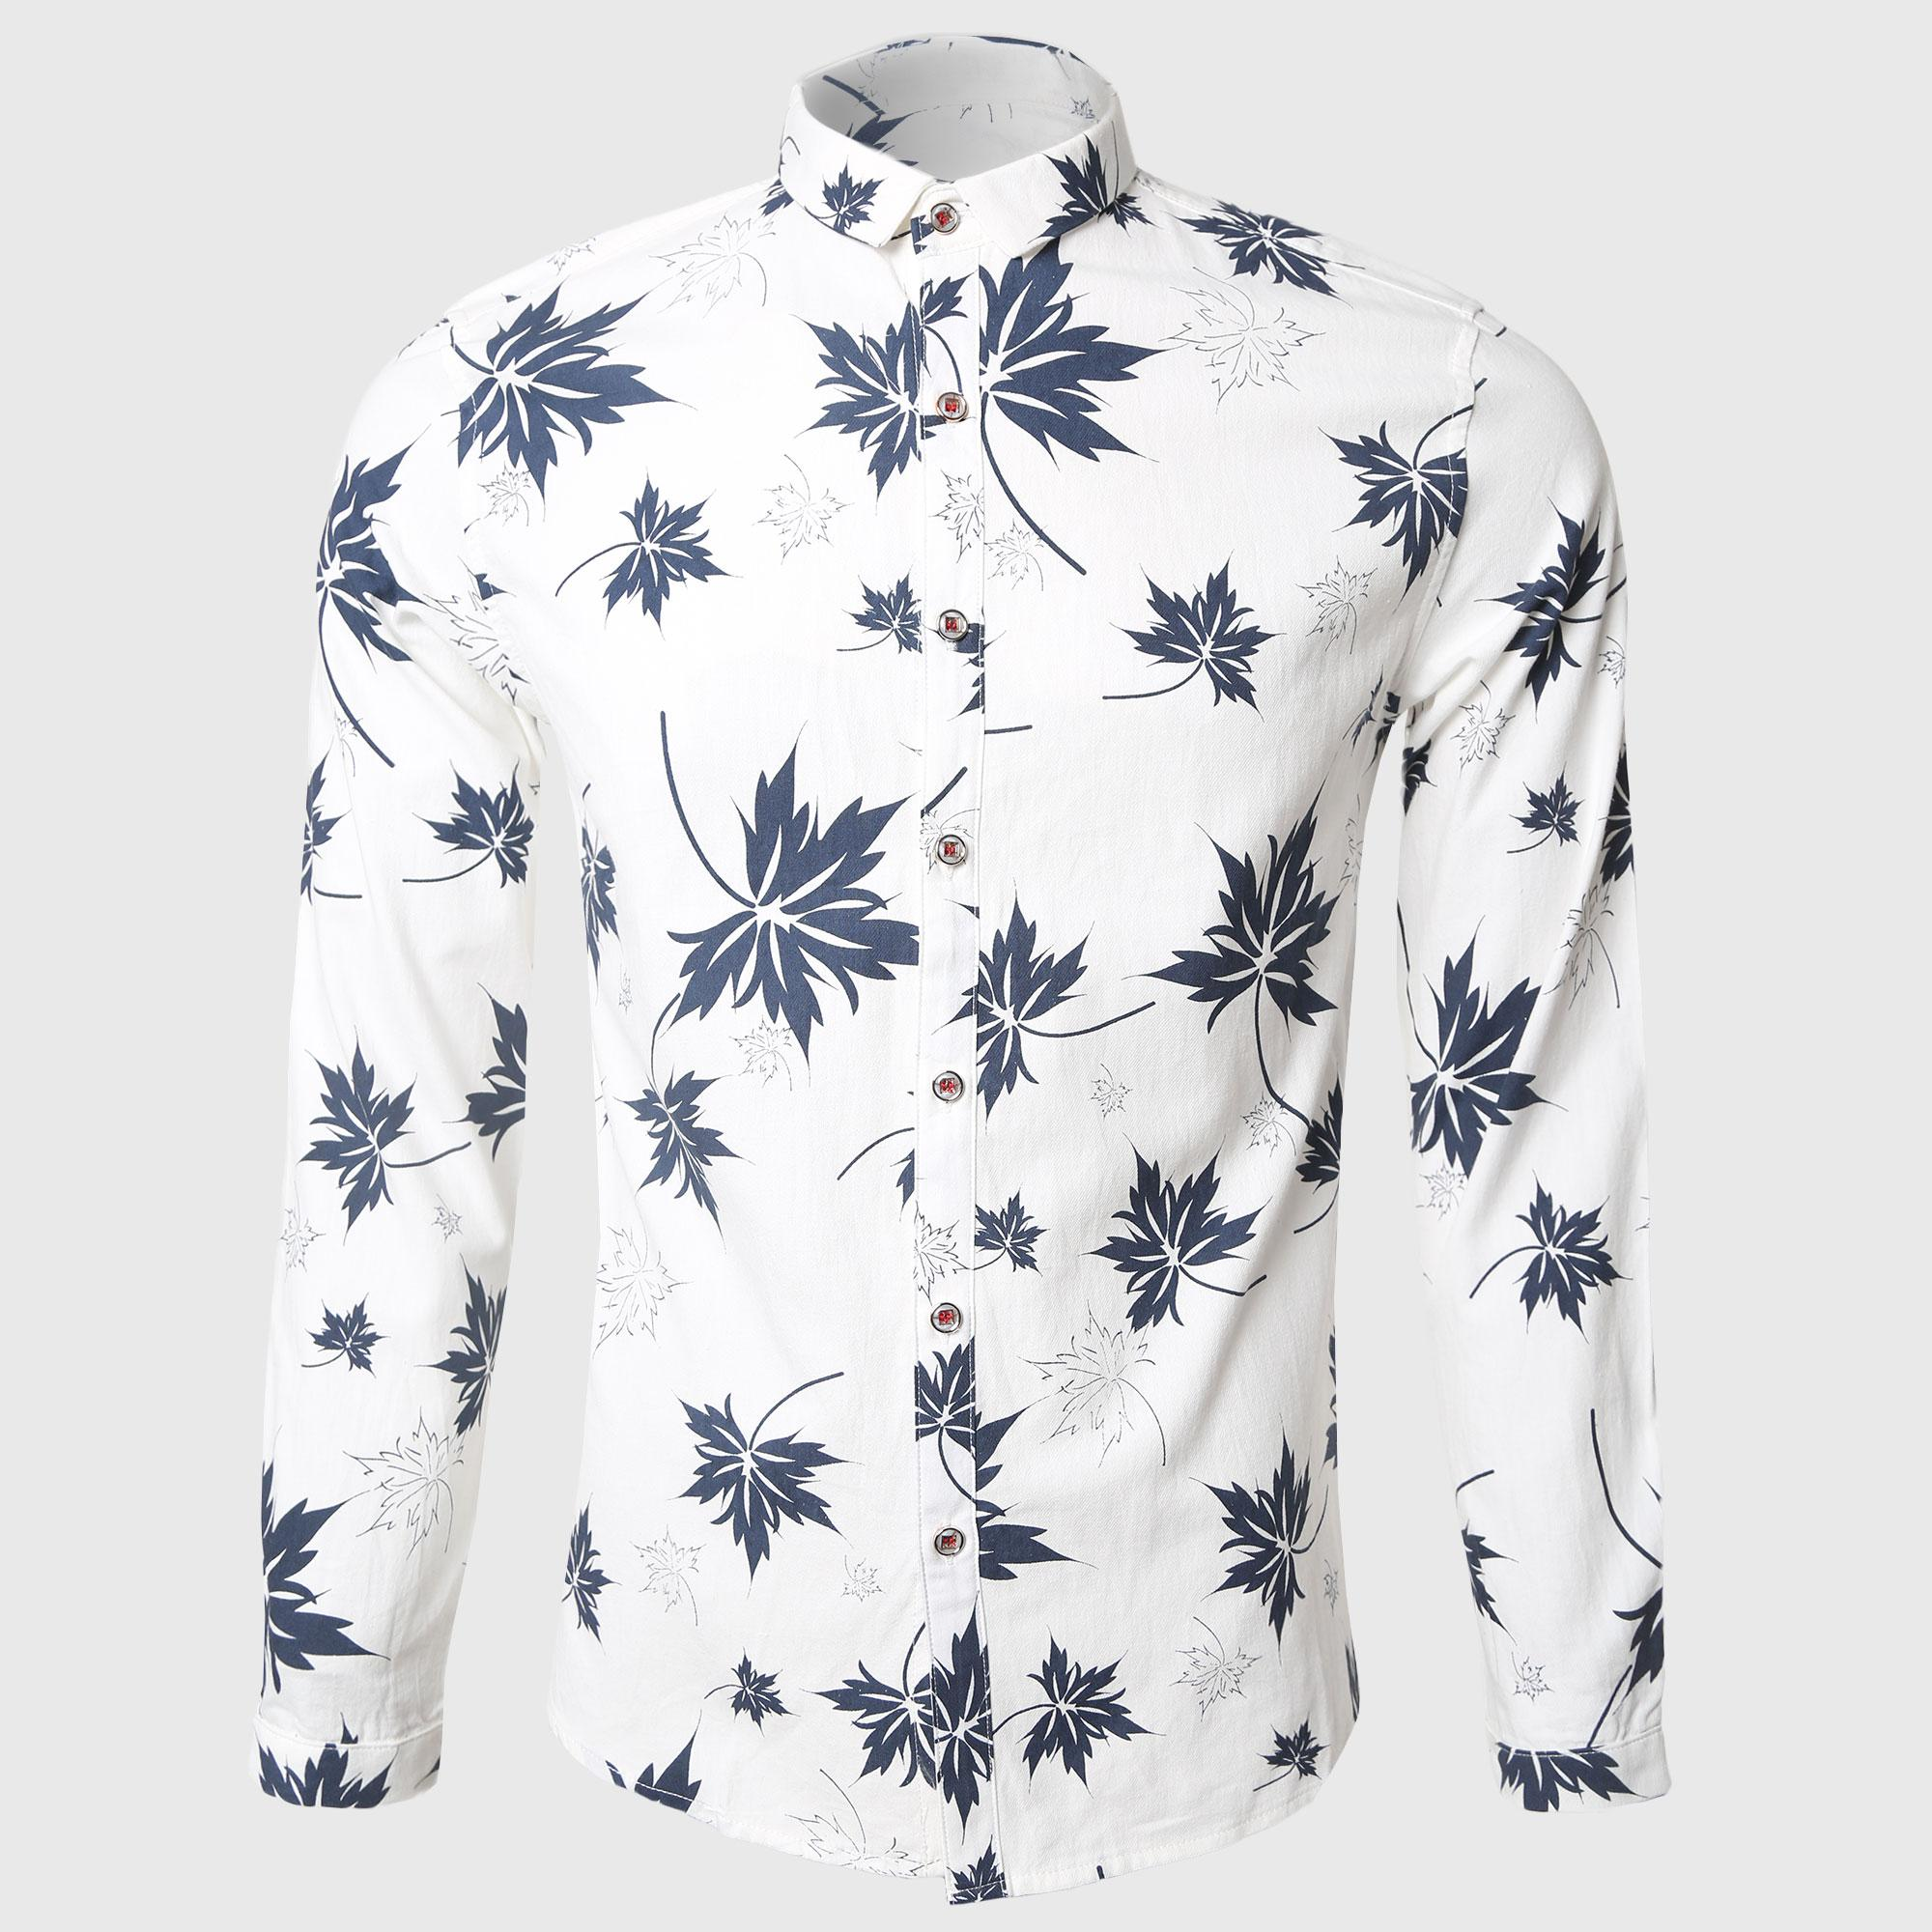 save up to 60% durable service best supplier 2019 Wholesale Leaves Printed Long Sleeve Shirt Men White Casual Shirts  Cotton Turn Down Collar Hawaiian Freedom Style From Keviny, $31.05 | ...